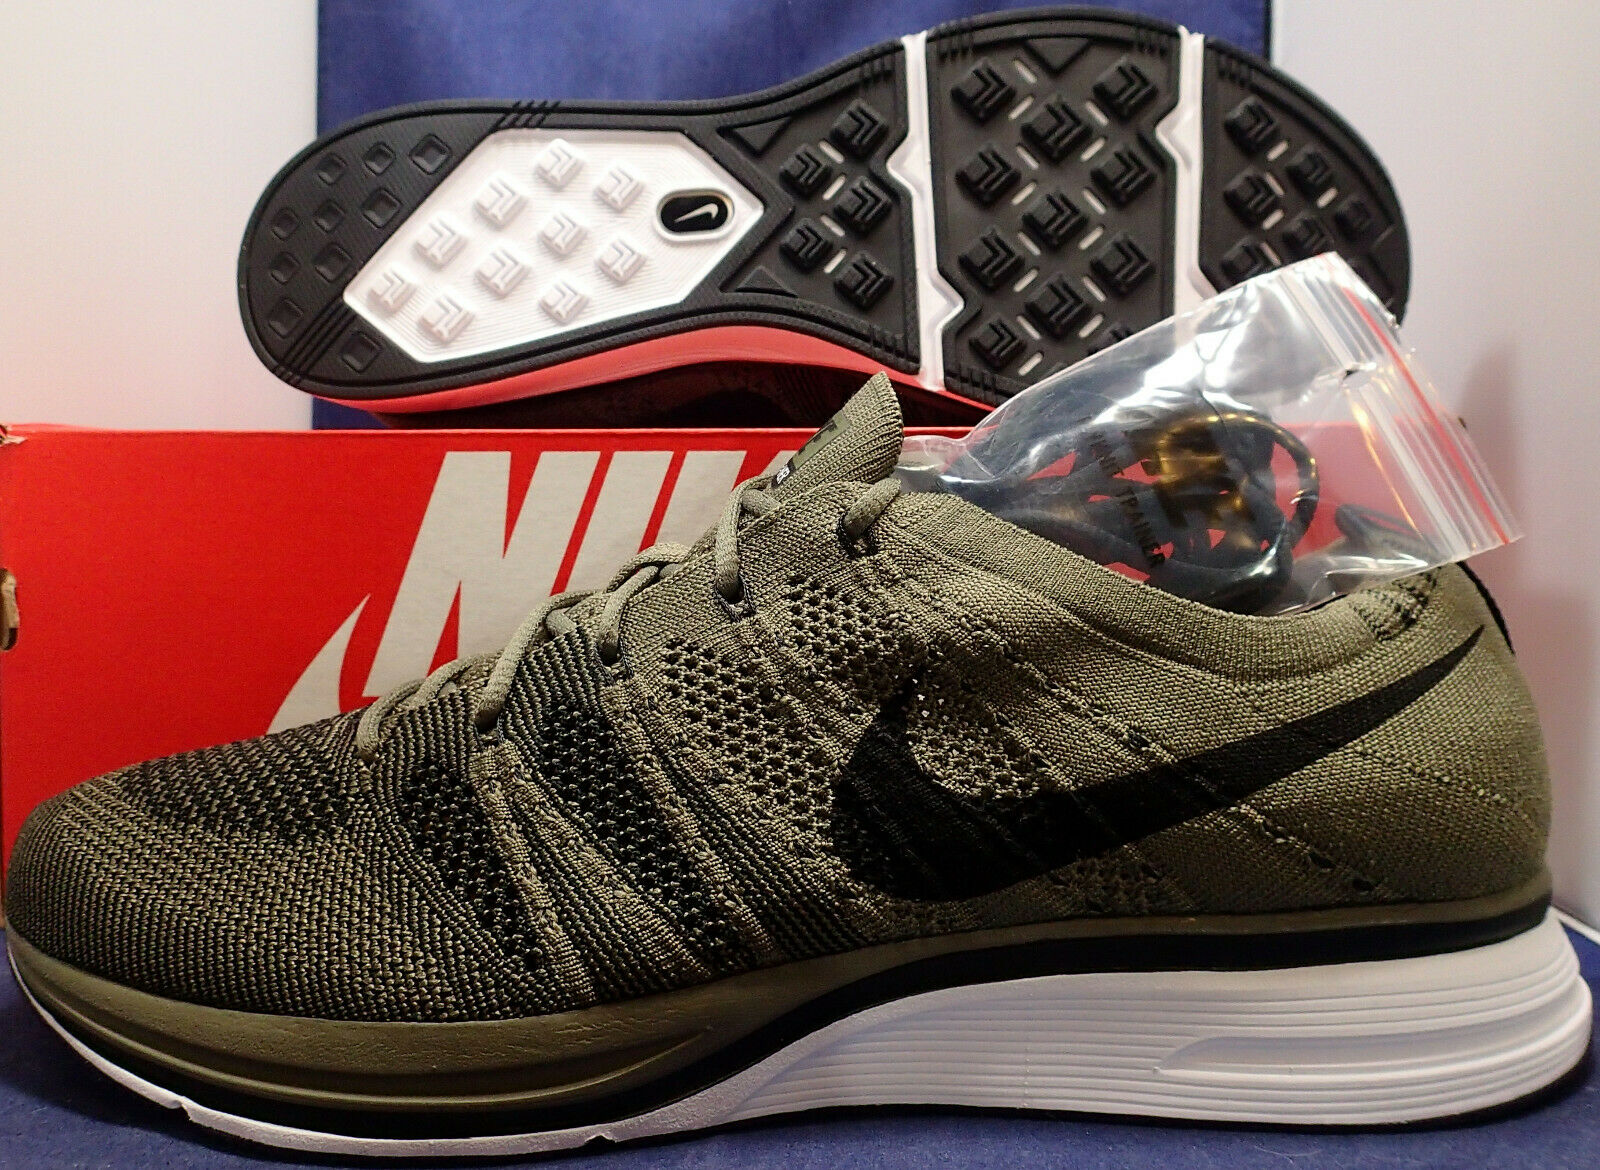 Nike Flyknit Trainer Medium Olive Black White SZ 11.5 ( AH8396-200 )